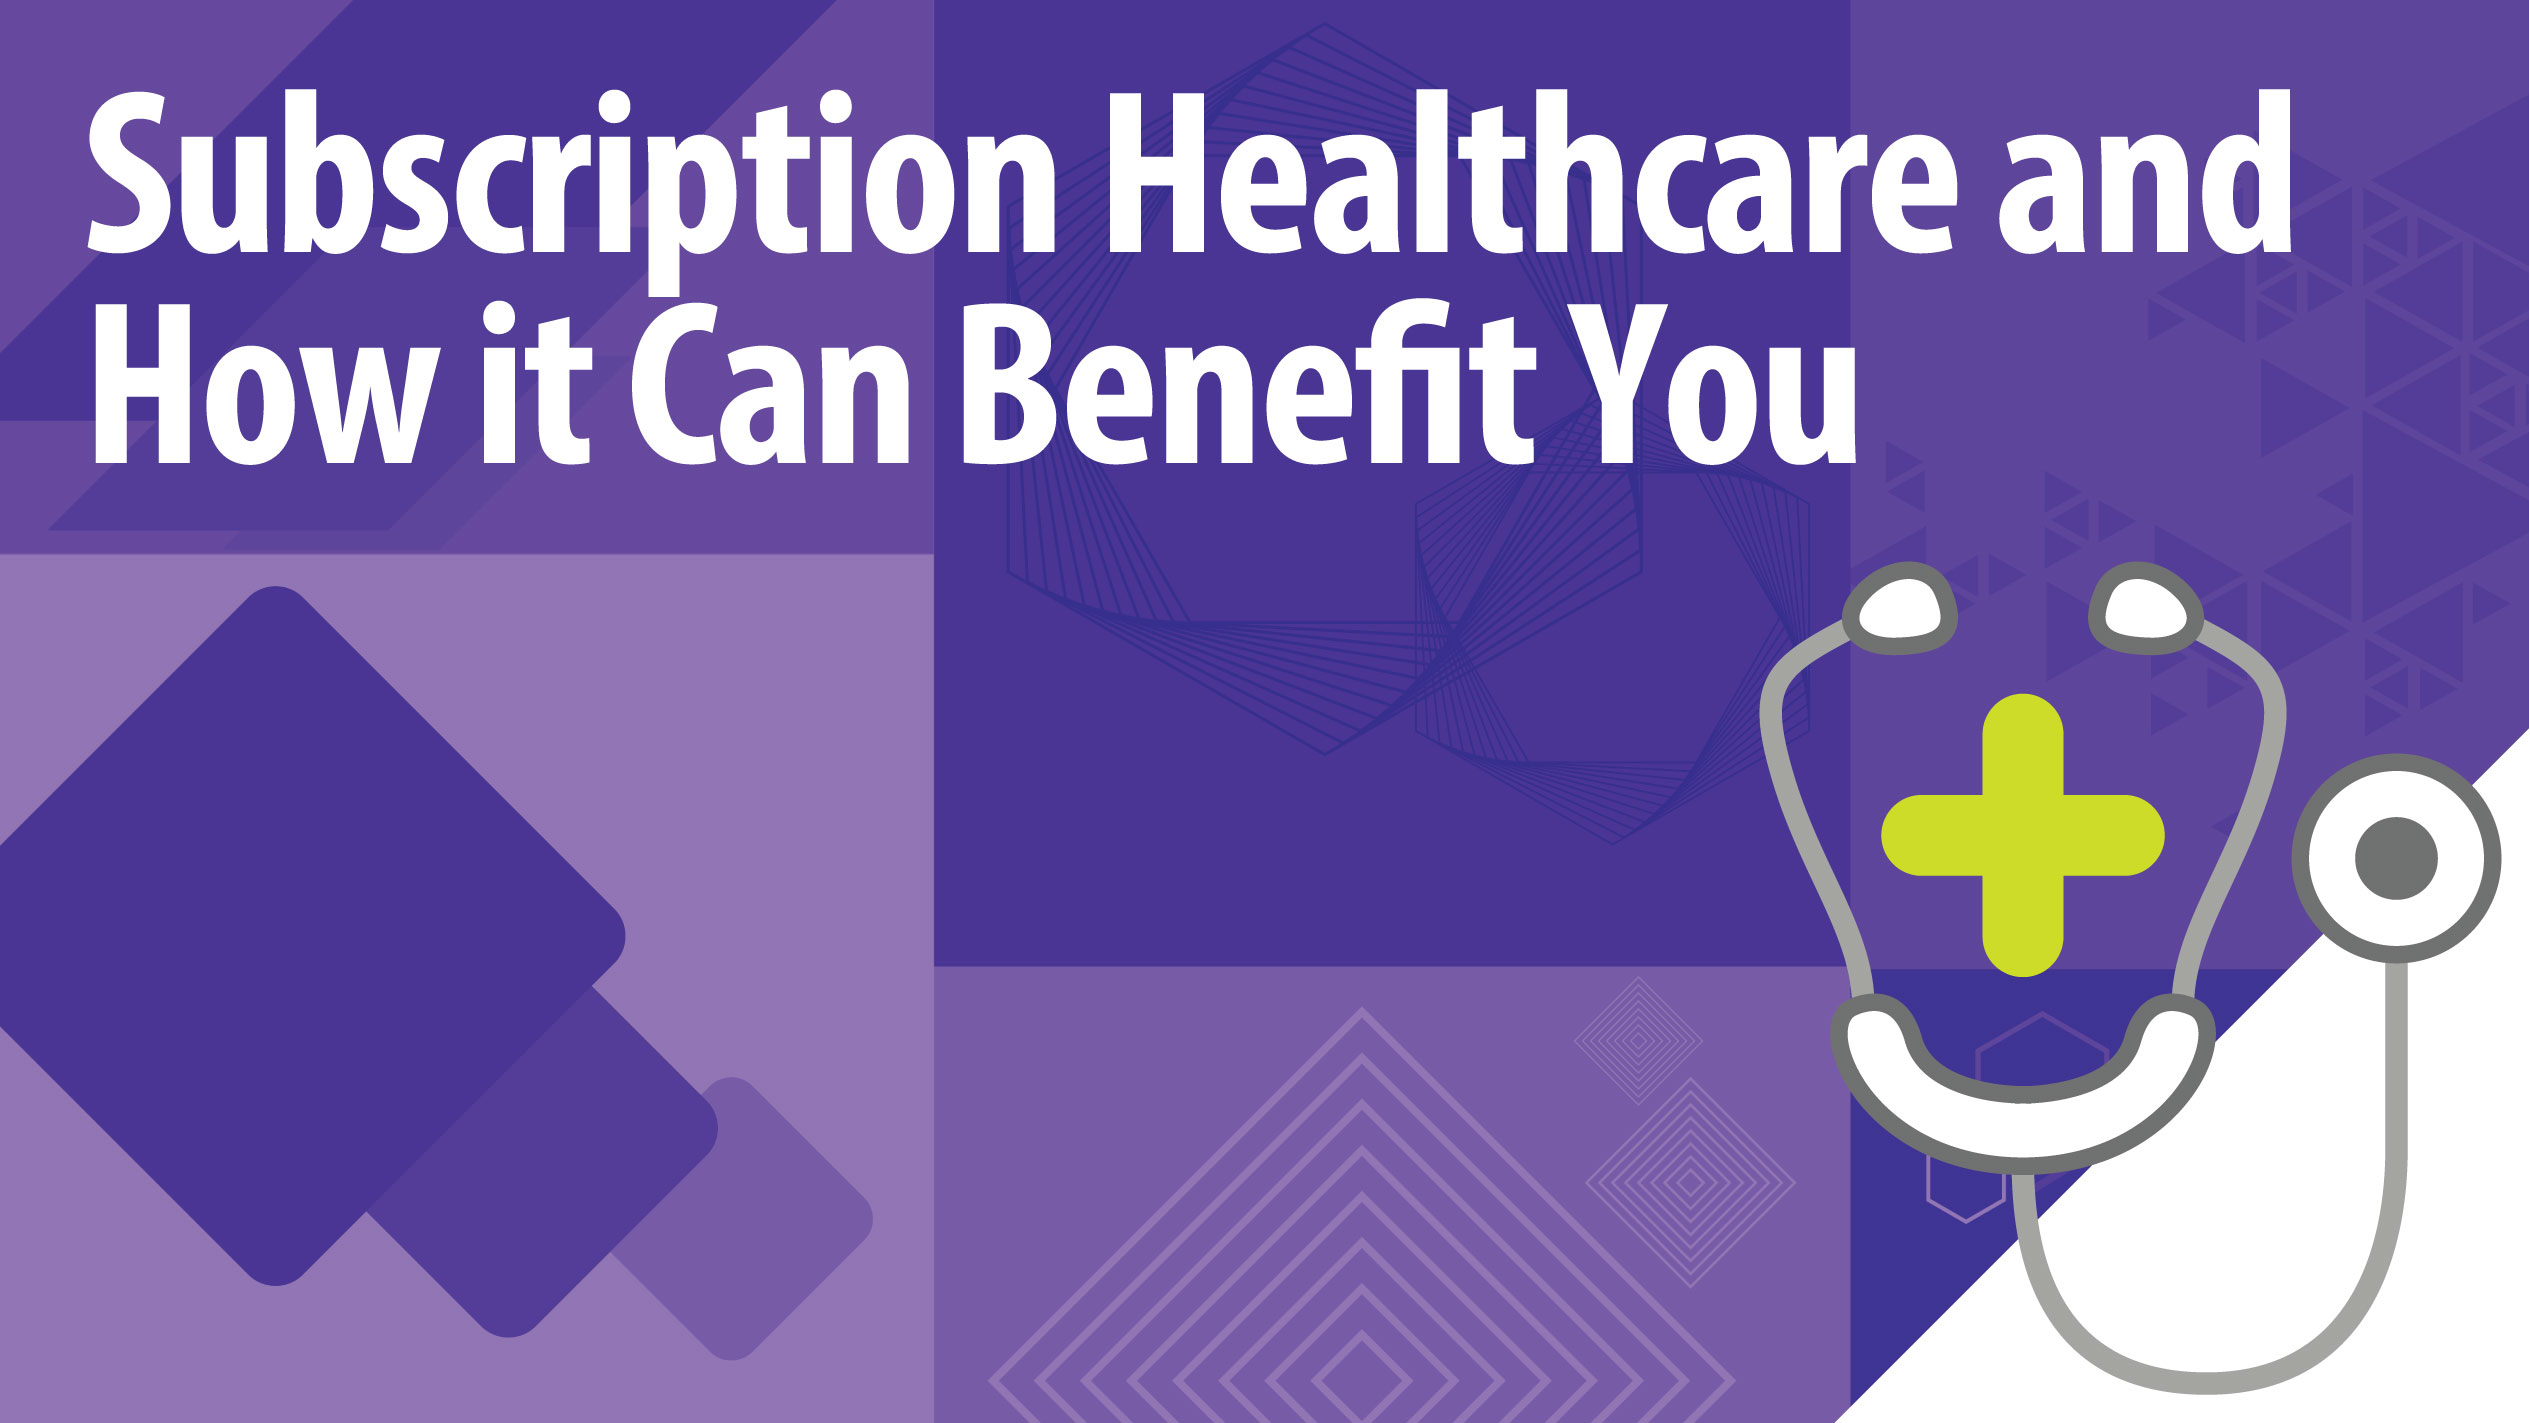 Modern Subscription Healthcare and How it Can Benefit You